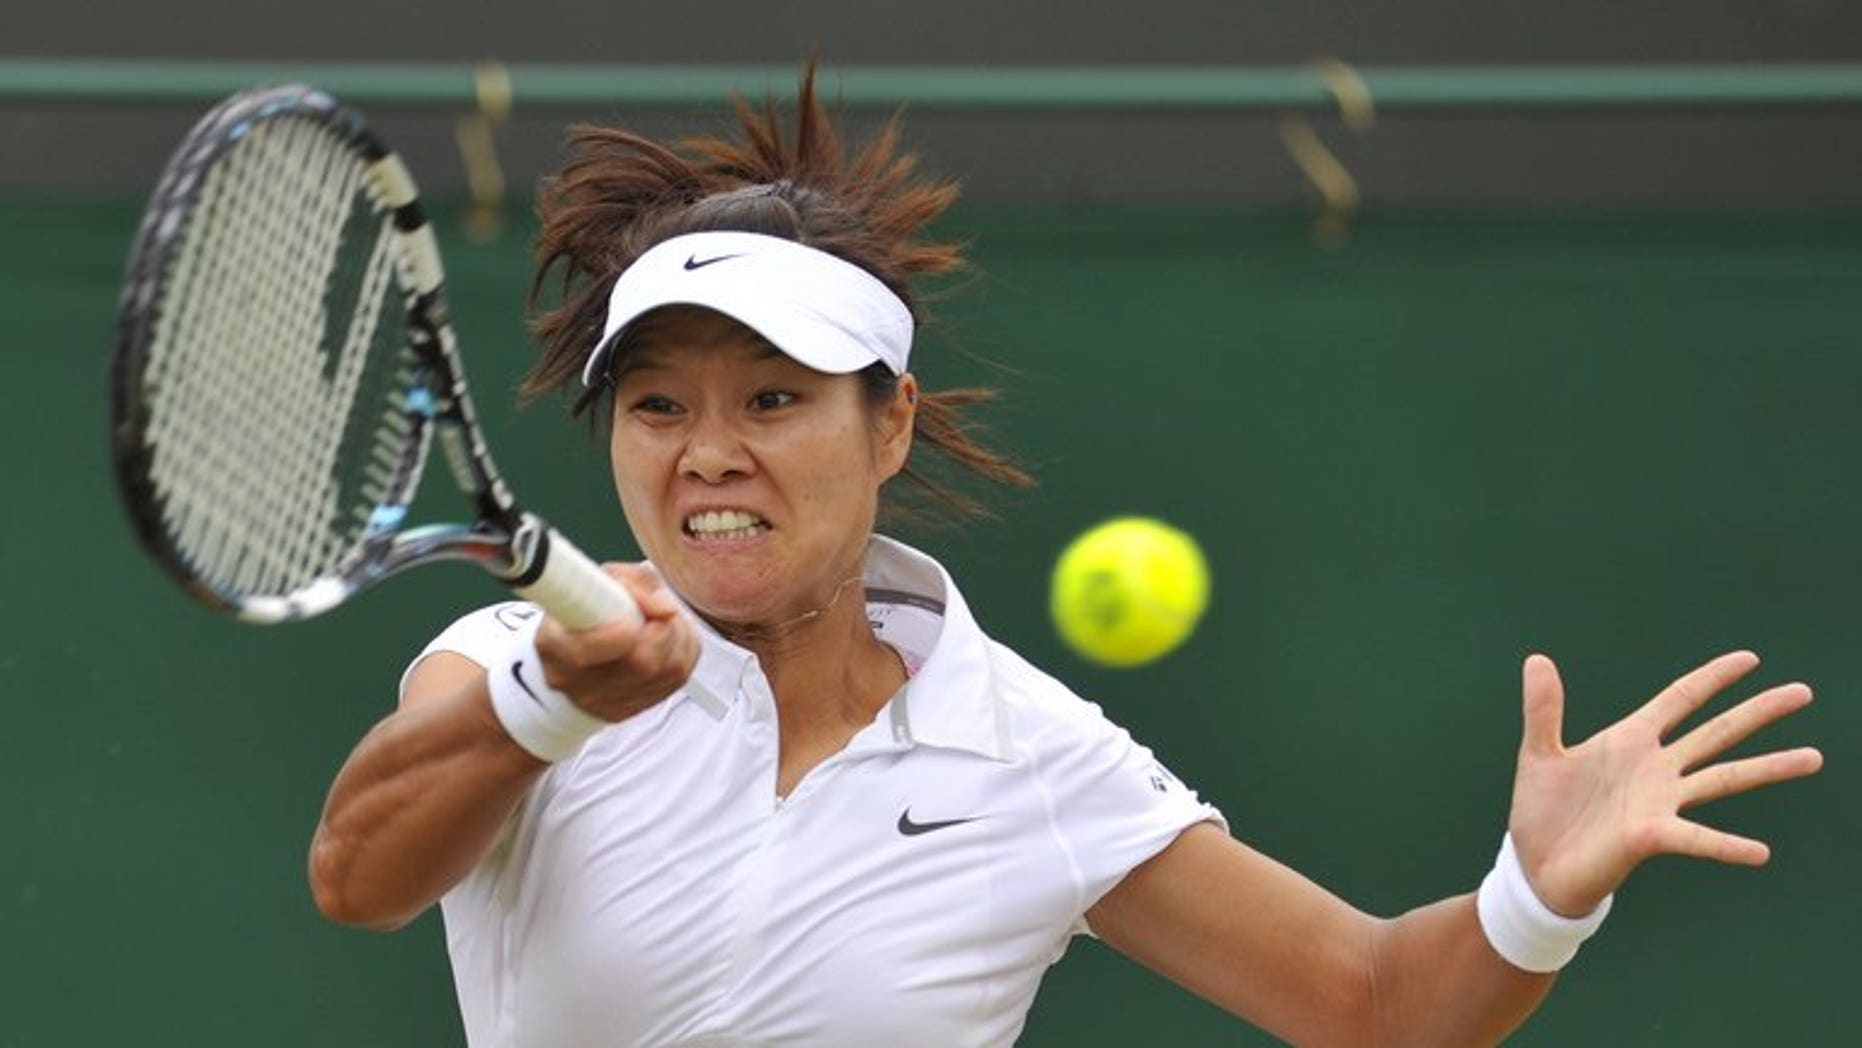 Li Na makes a return against Roberta Vinci at Wimbledon on Monday. The Chinese sixth seed raced into the Wimbledon quarter-finals with a 6-2, 6-0 demolition of Italian 11th seed Vinci.